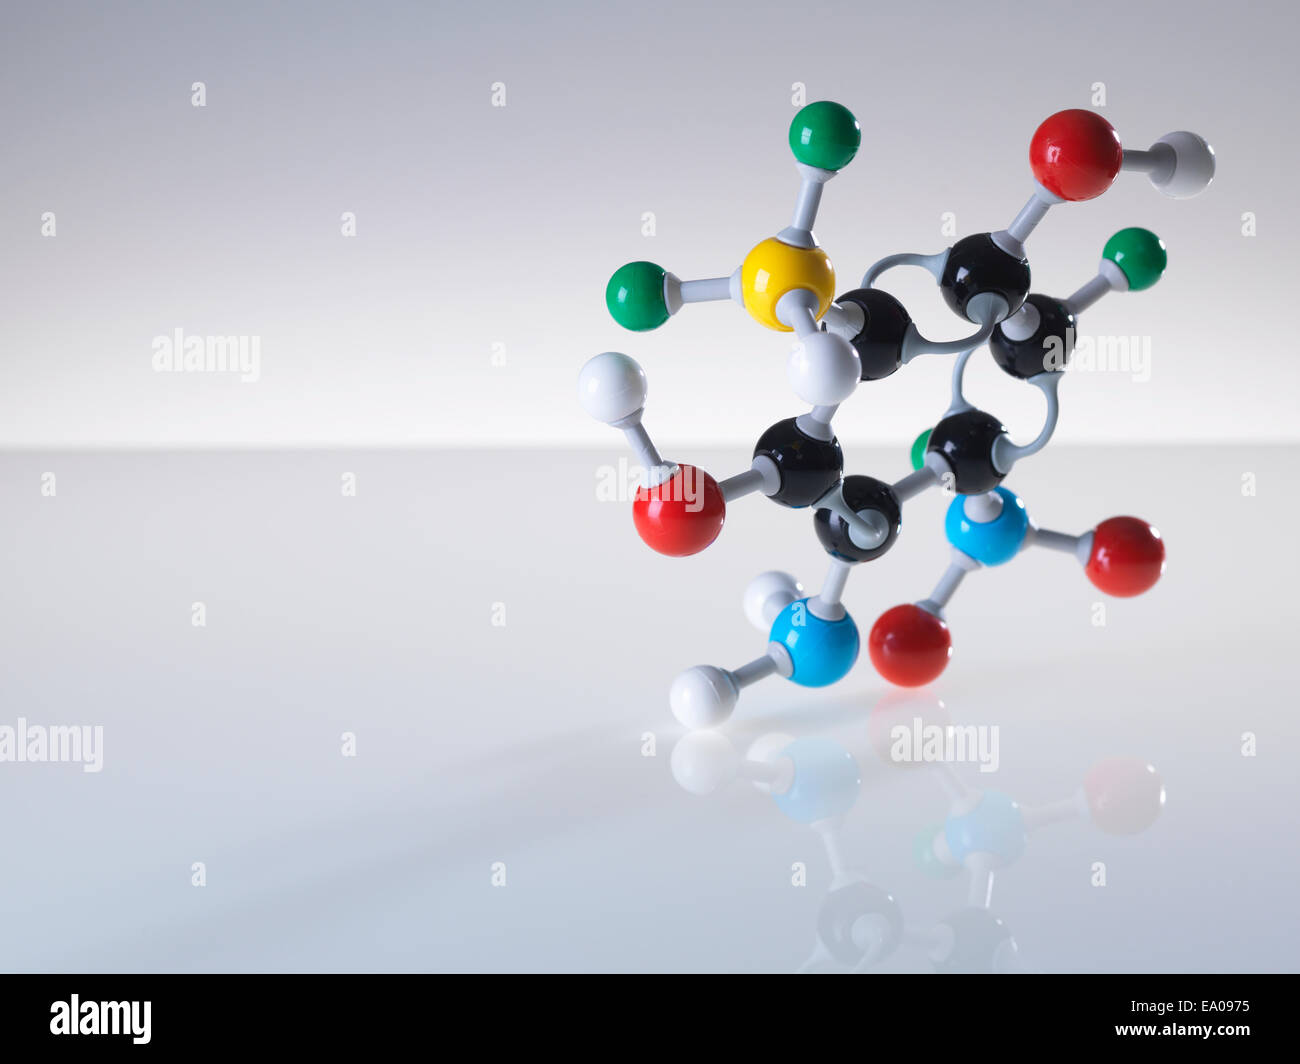 Molecular model - Stock Image